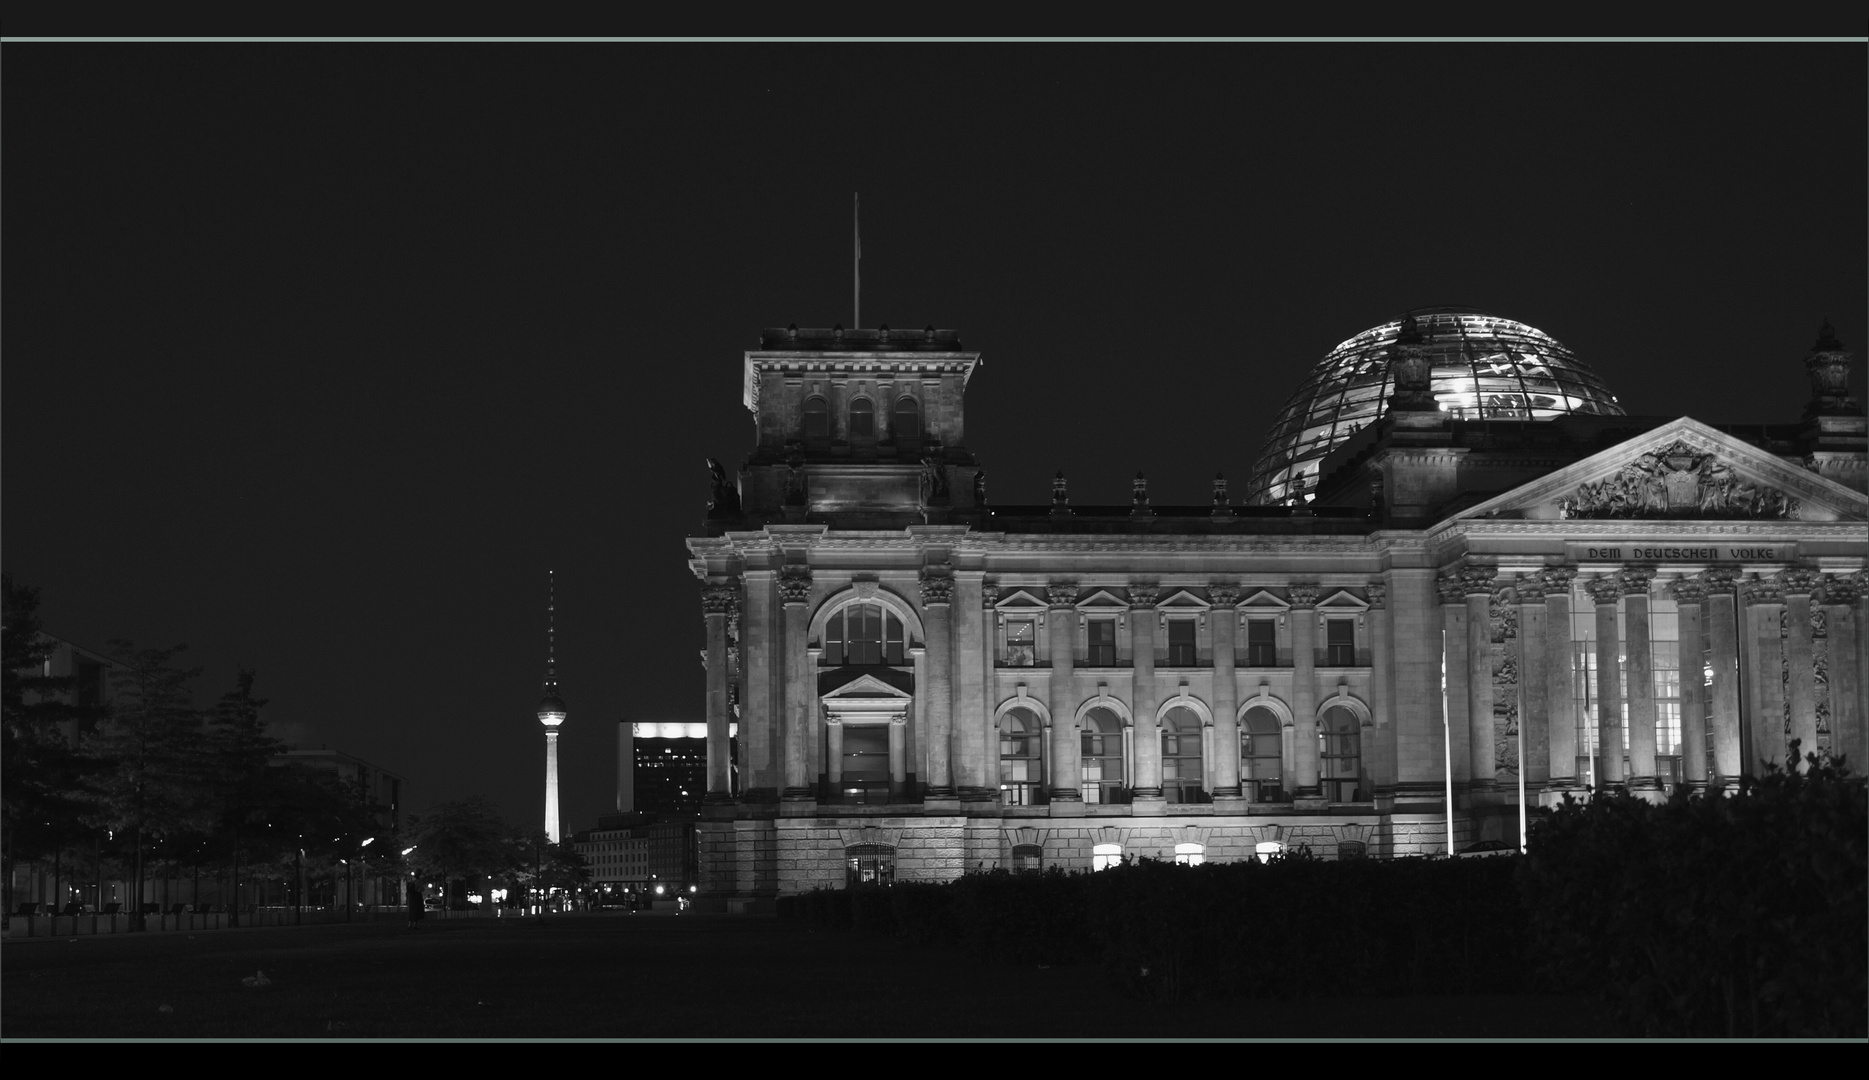 *Berlin Mitte @ night*